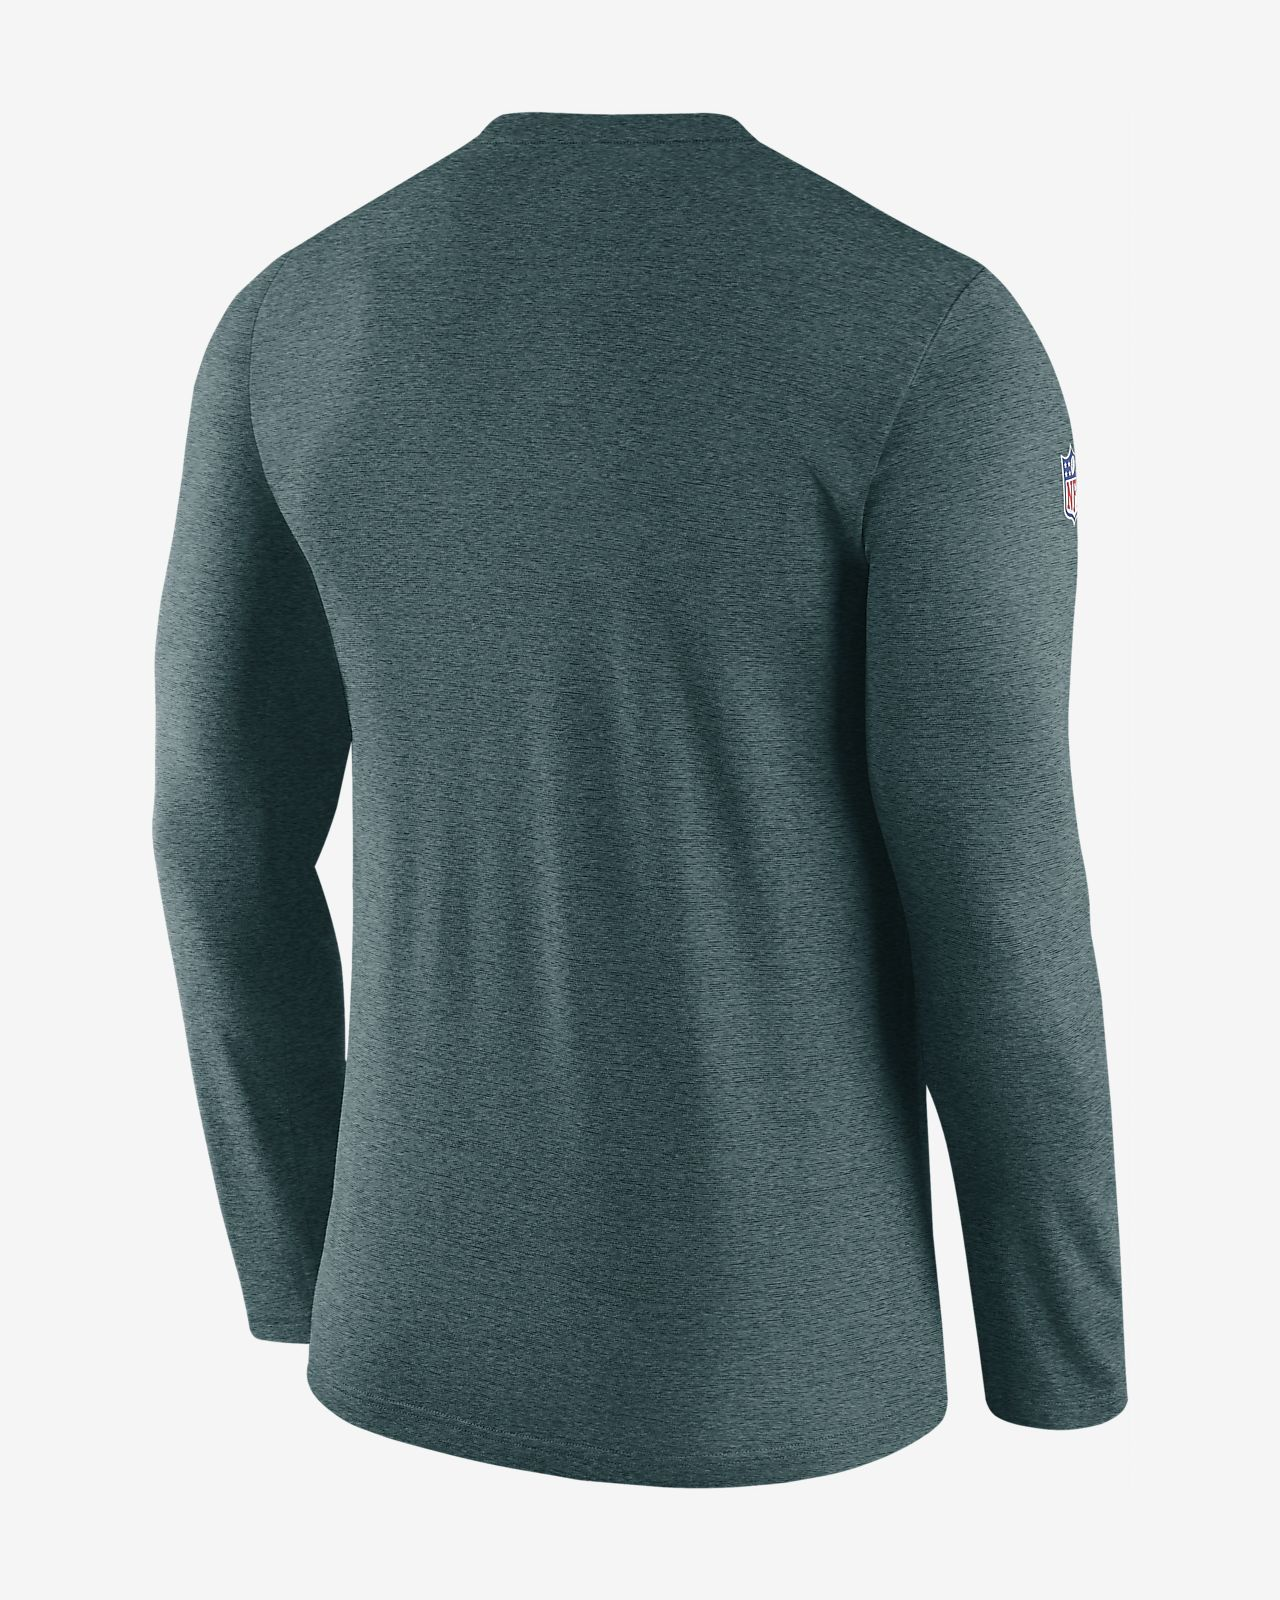 296ce0bf689954 Nike Dri-FIT Coach (NFL Eagles) Men s Long-Sleeve Top. Nike.com